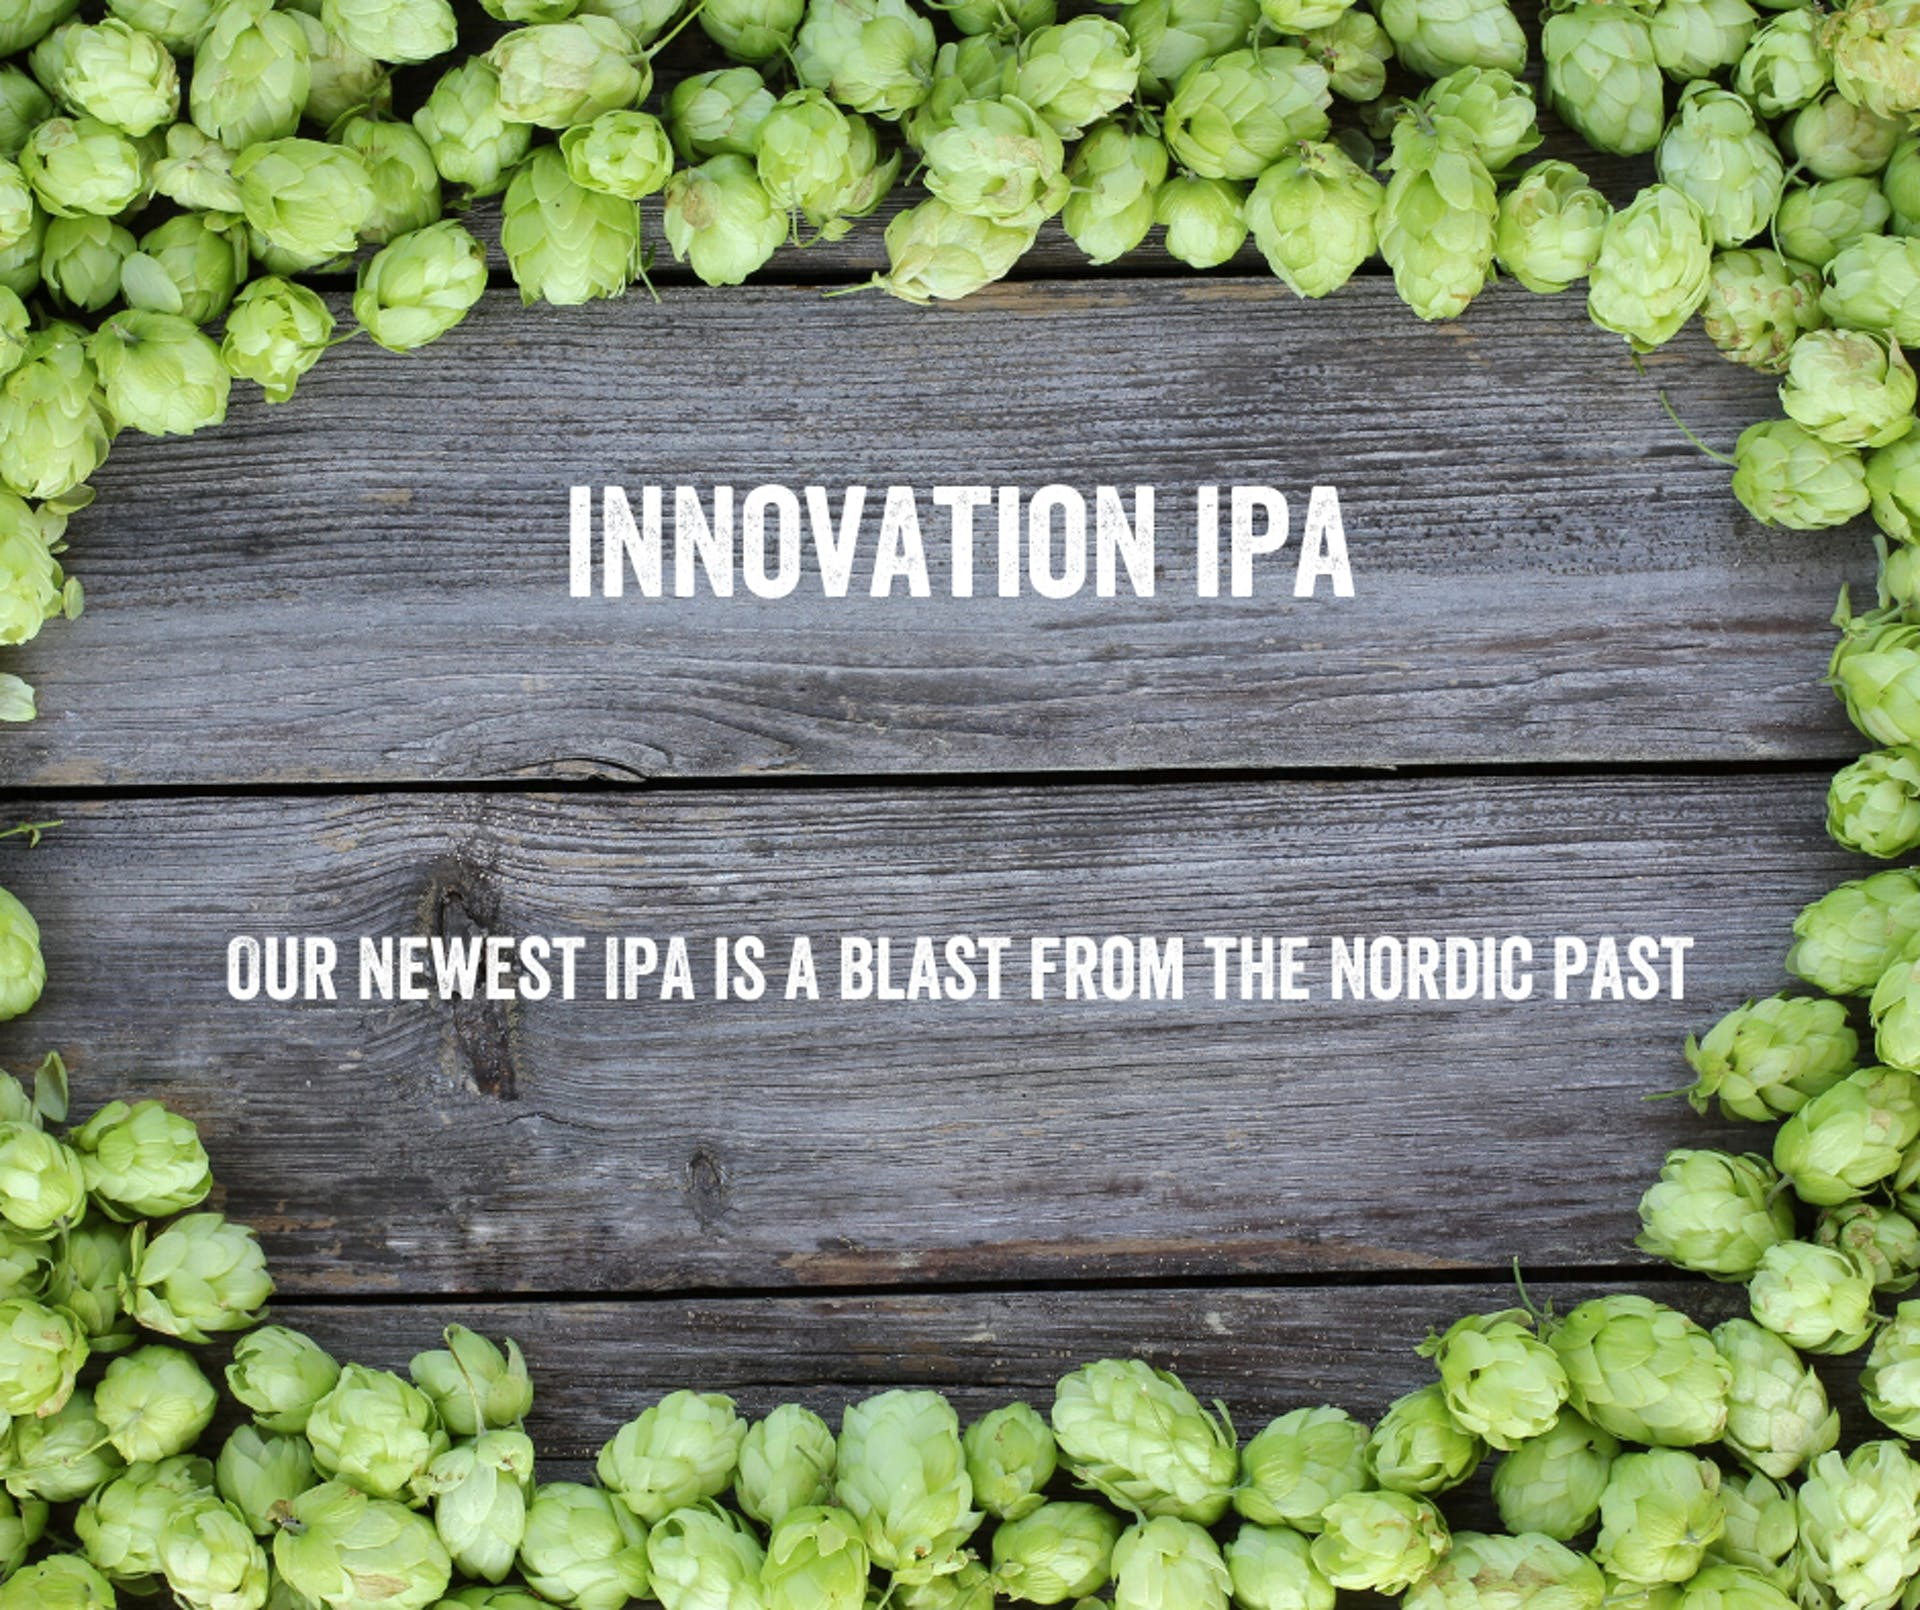 innovation ipa (1)